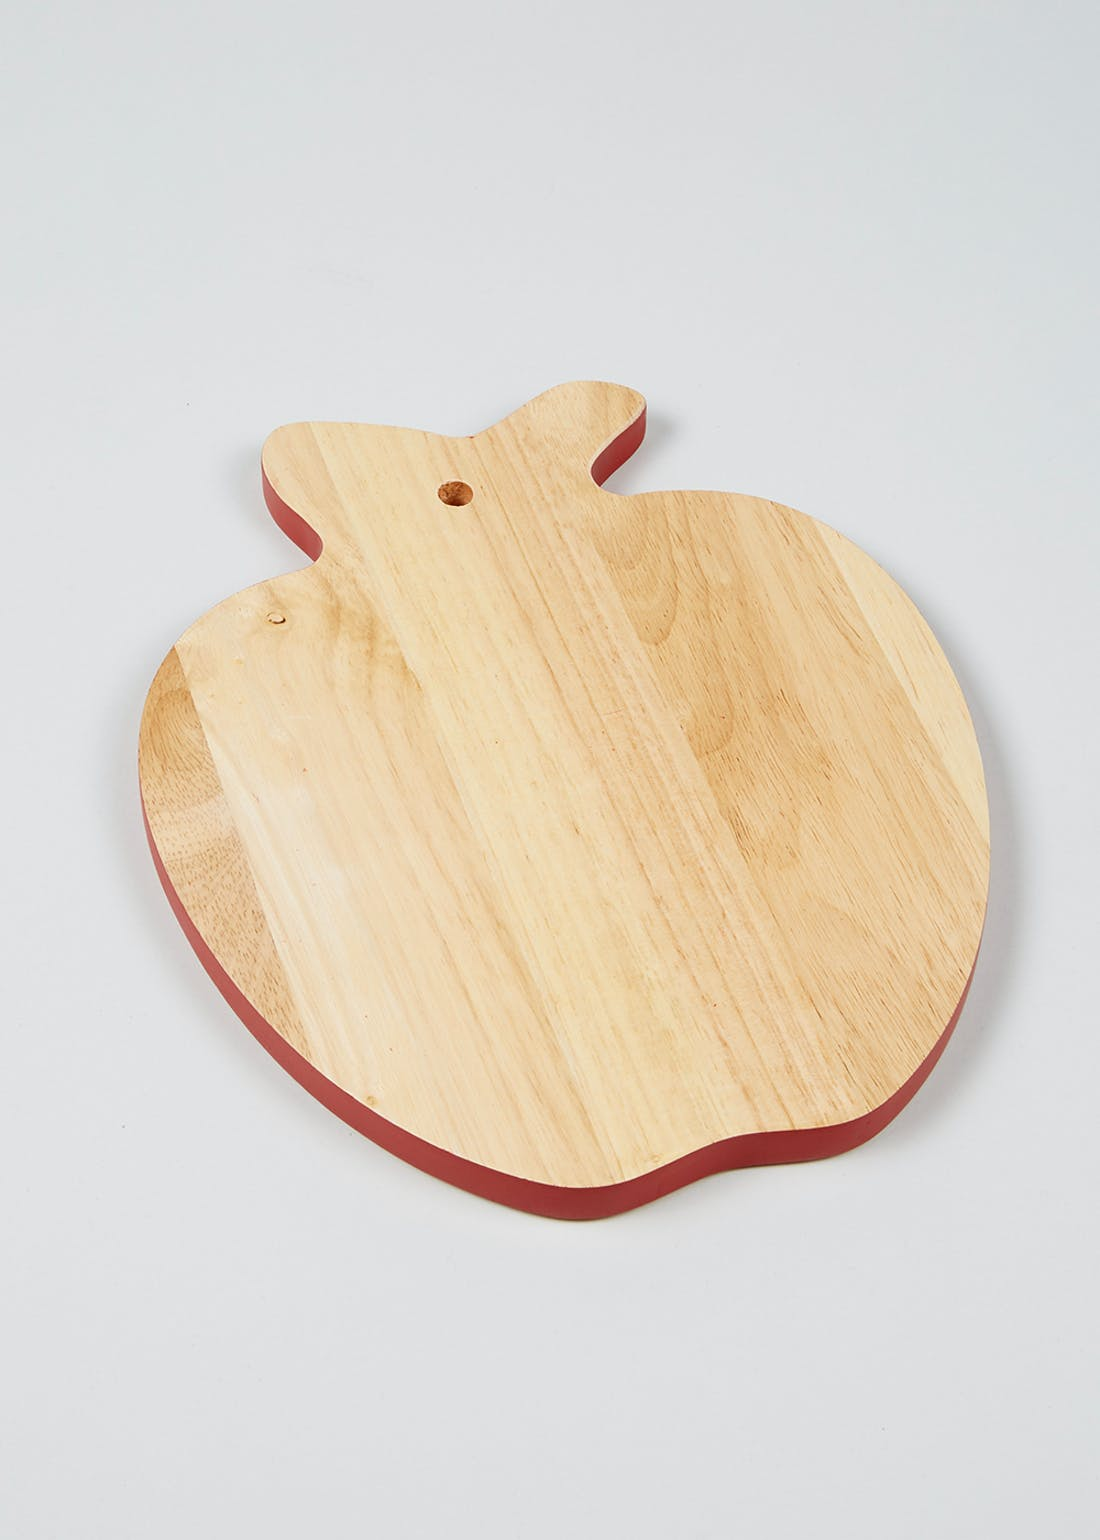 Apple Shaped Wooden Chopping Board (25cm x 20cm)